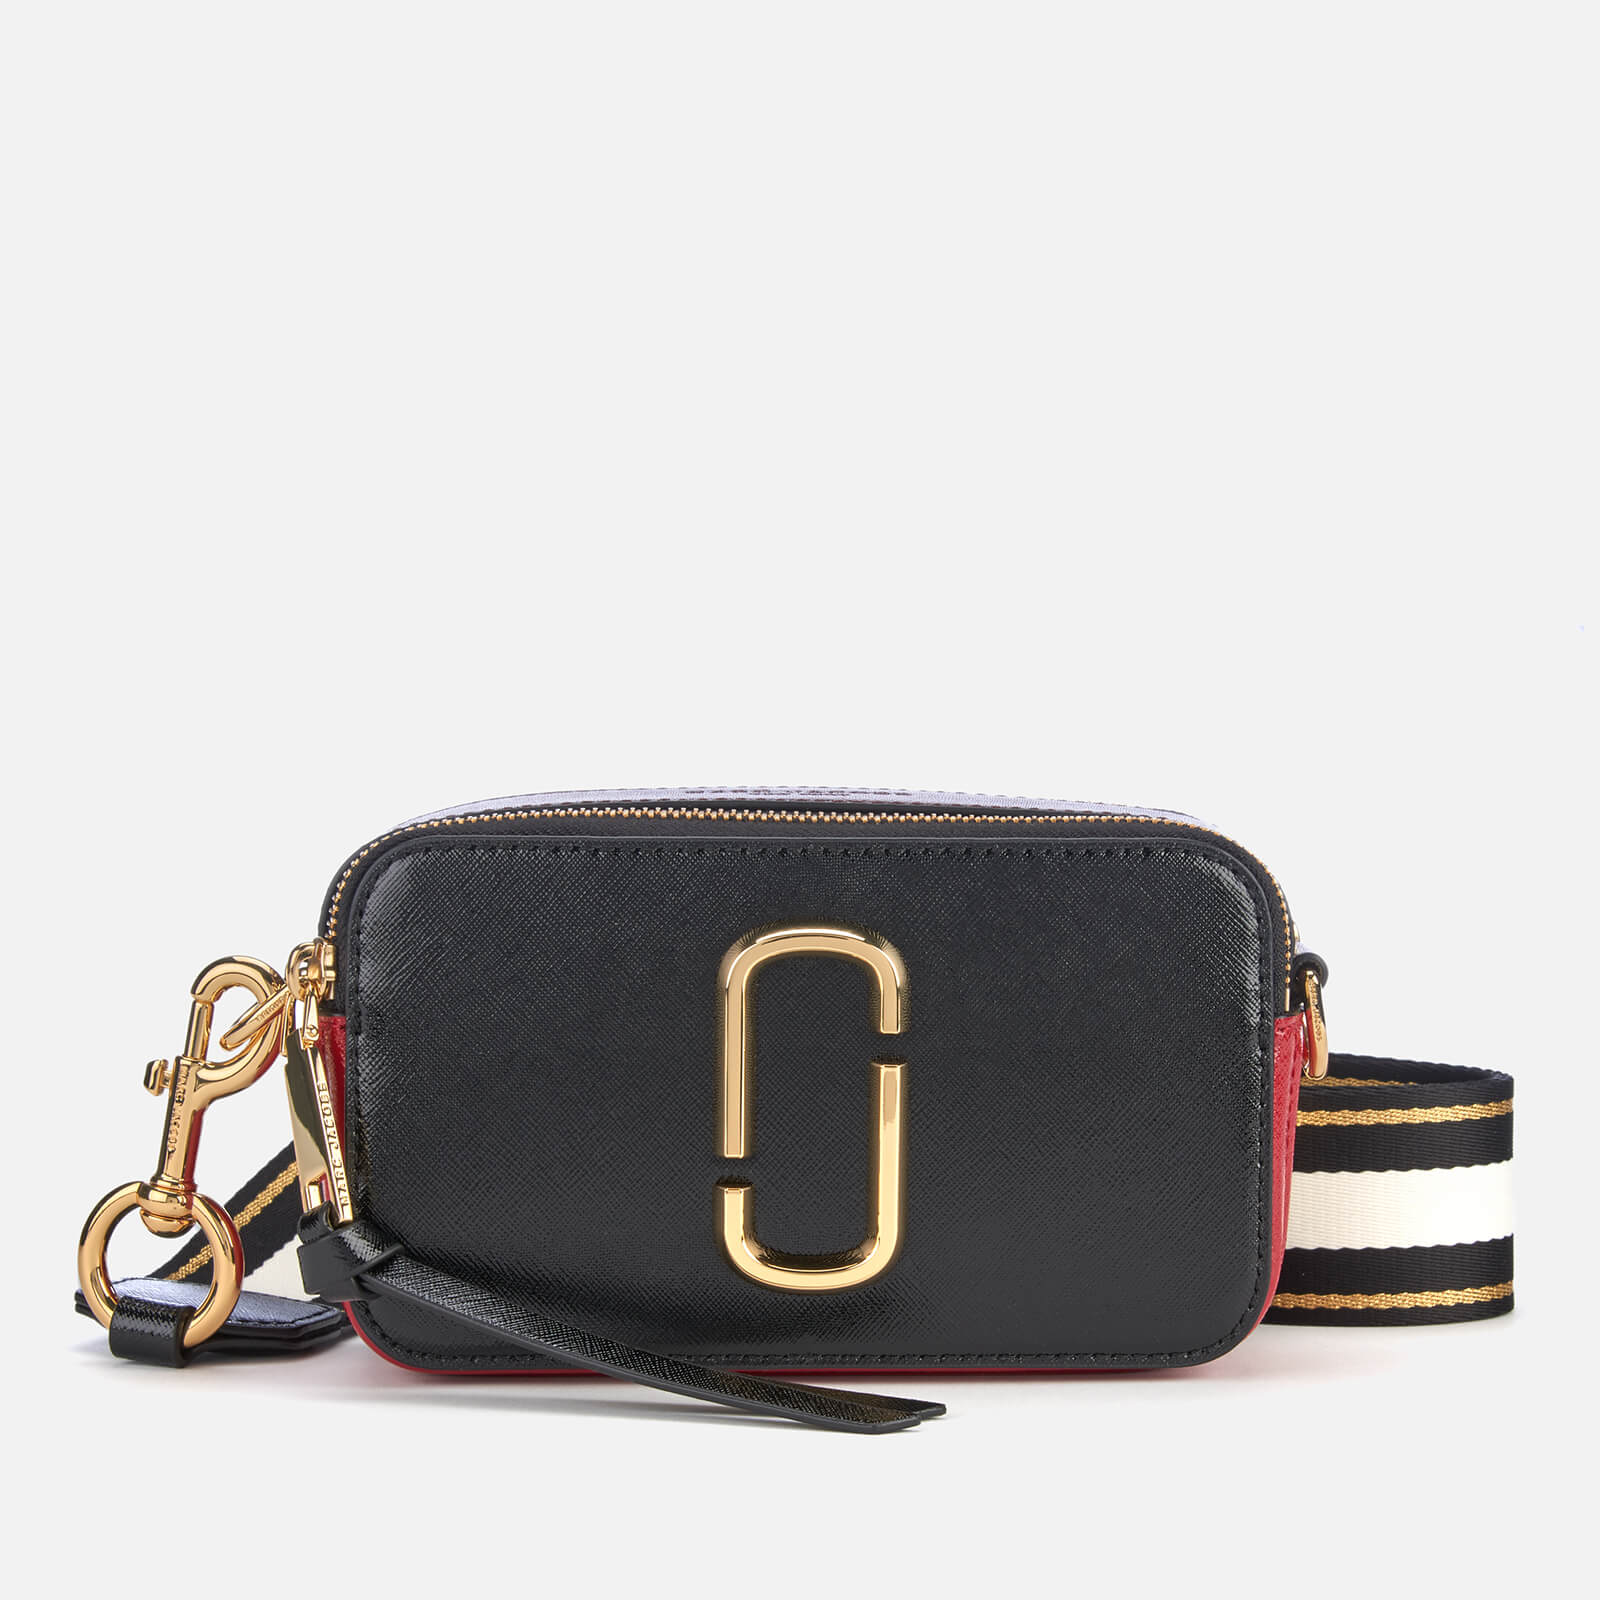 8ff2b445e0 Marc Jacobs Women's Snapshot Cross Body Bag - Black/Red - Free UK Delivery  over £50